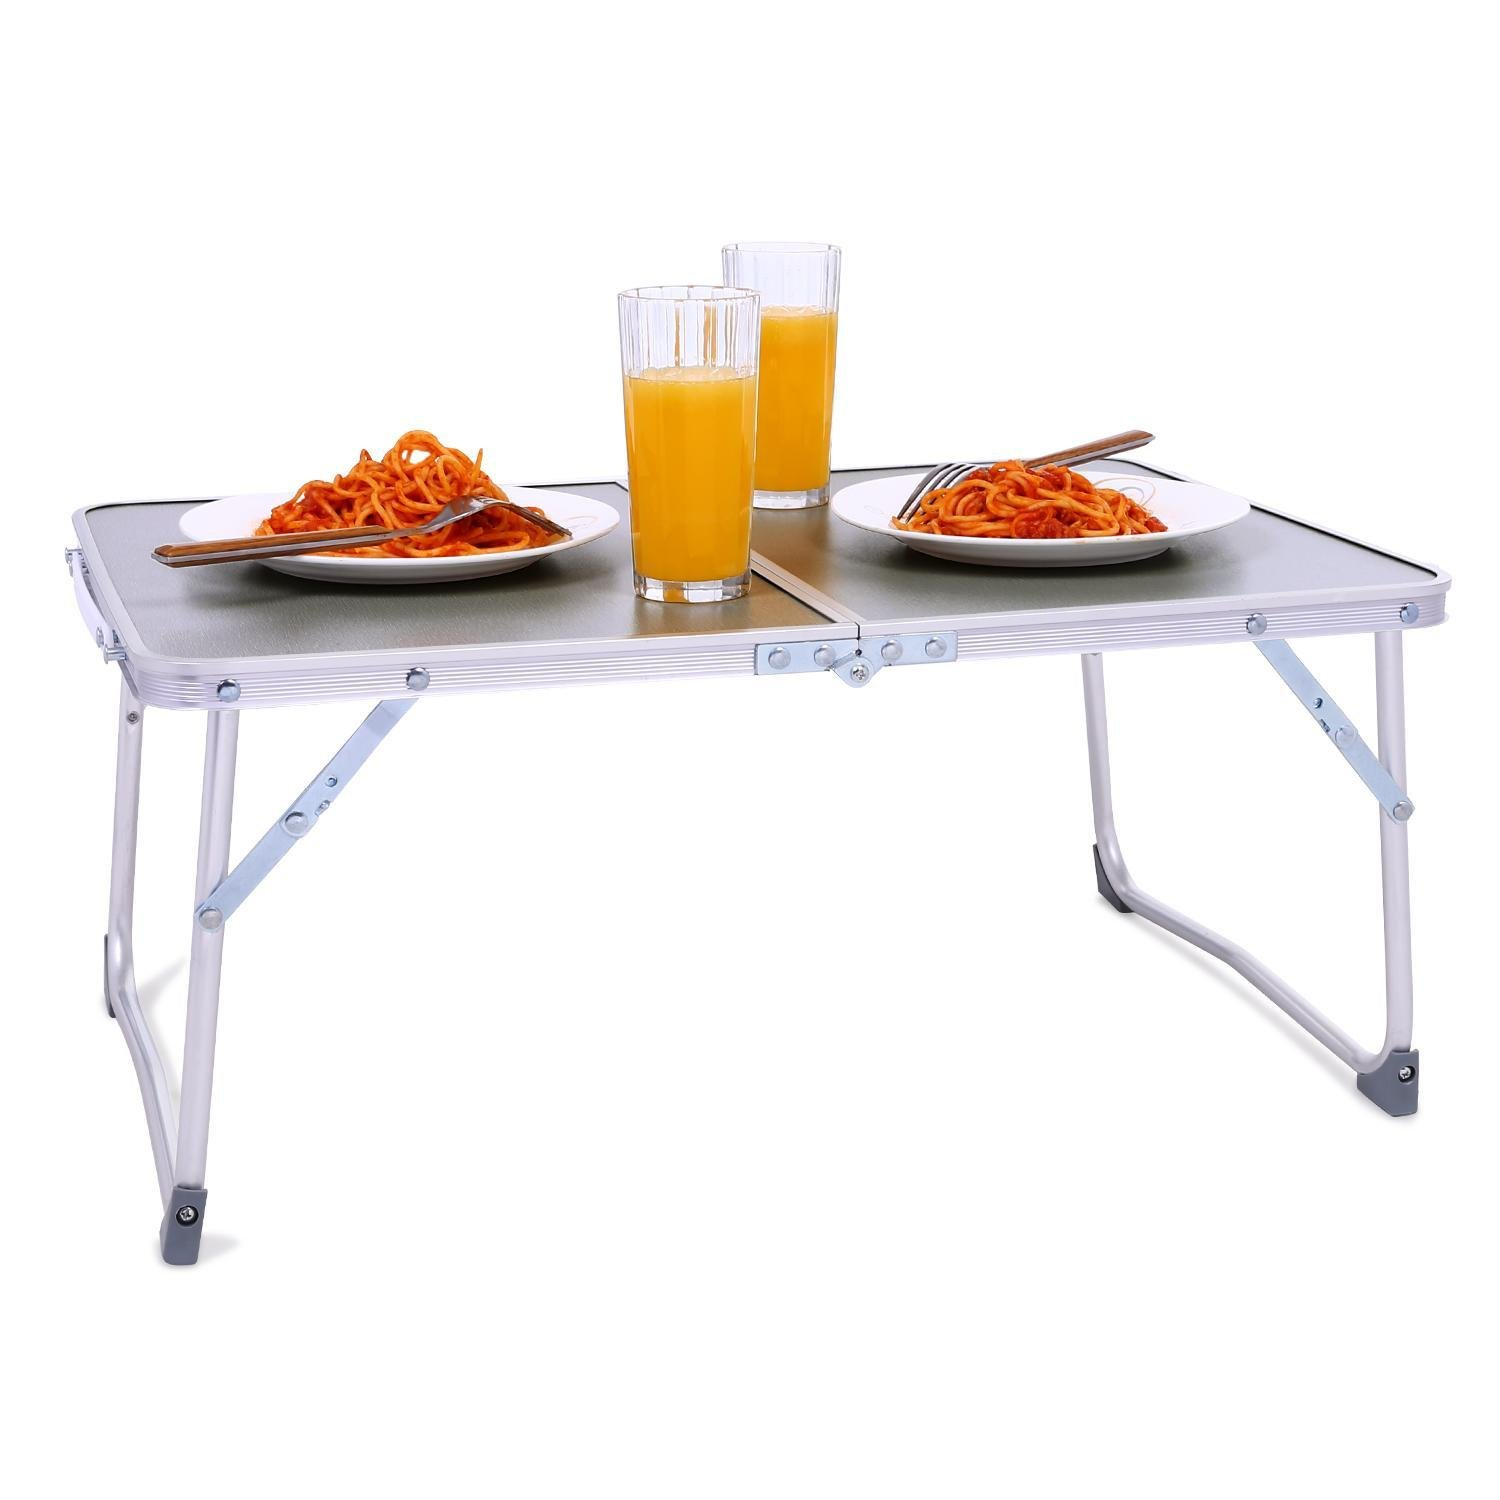 Rapesee Folding Aluminum Table Outdoor Picnic Camping Table 4 Person Portable Adjustable Family Outside Party Dining Desk, 23.74 x 17.80 Inch (Gray)